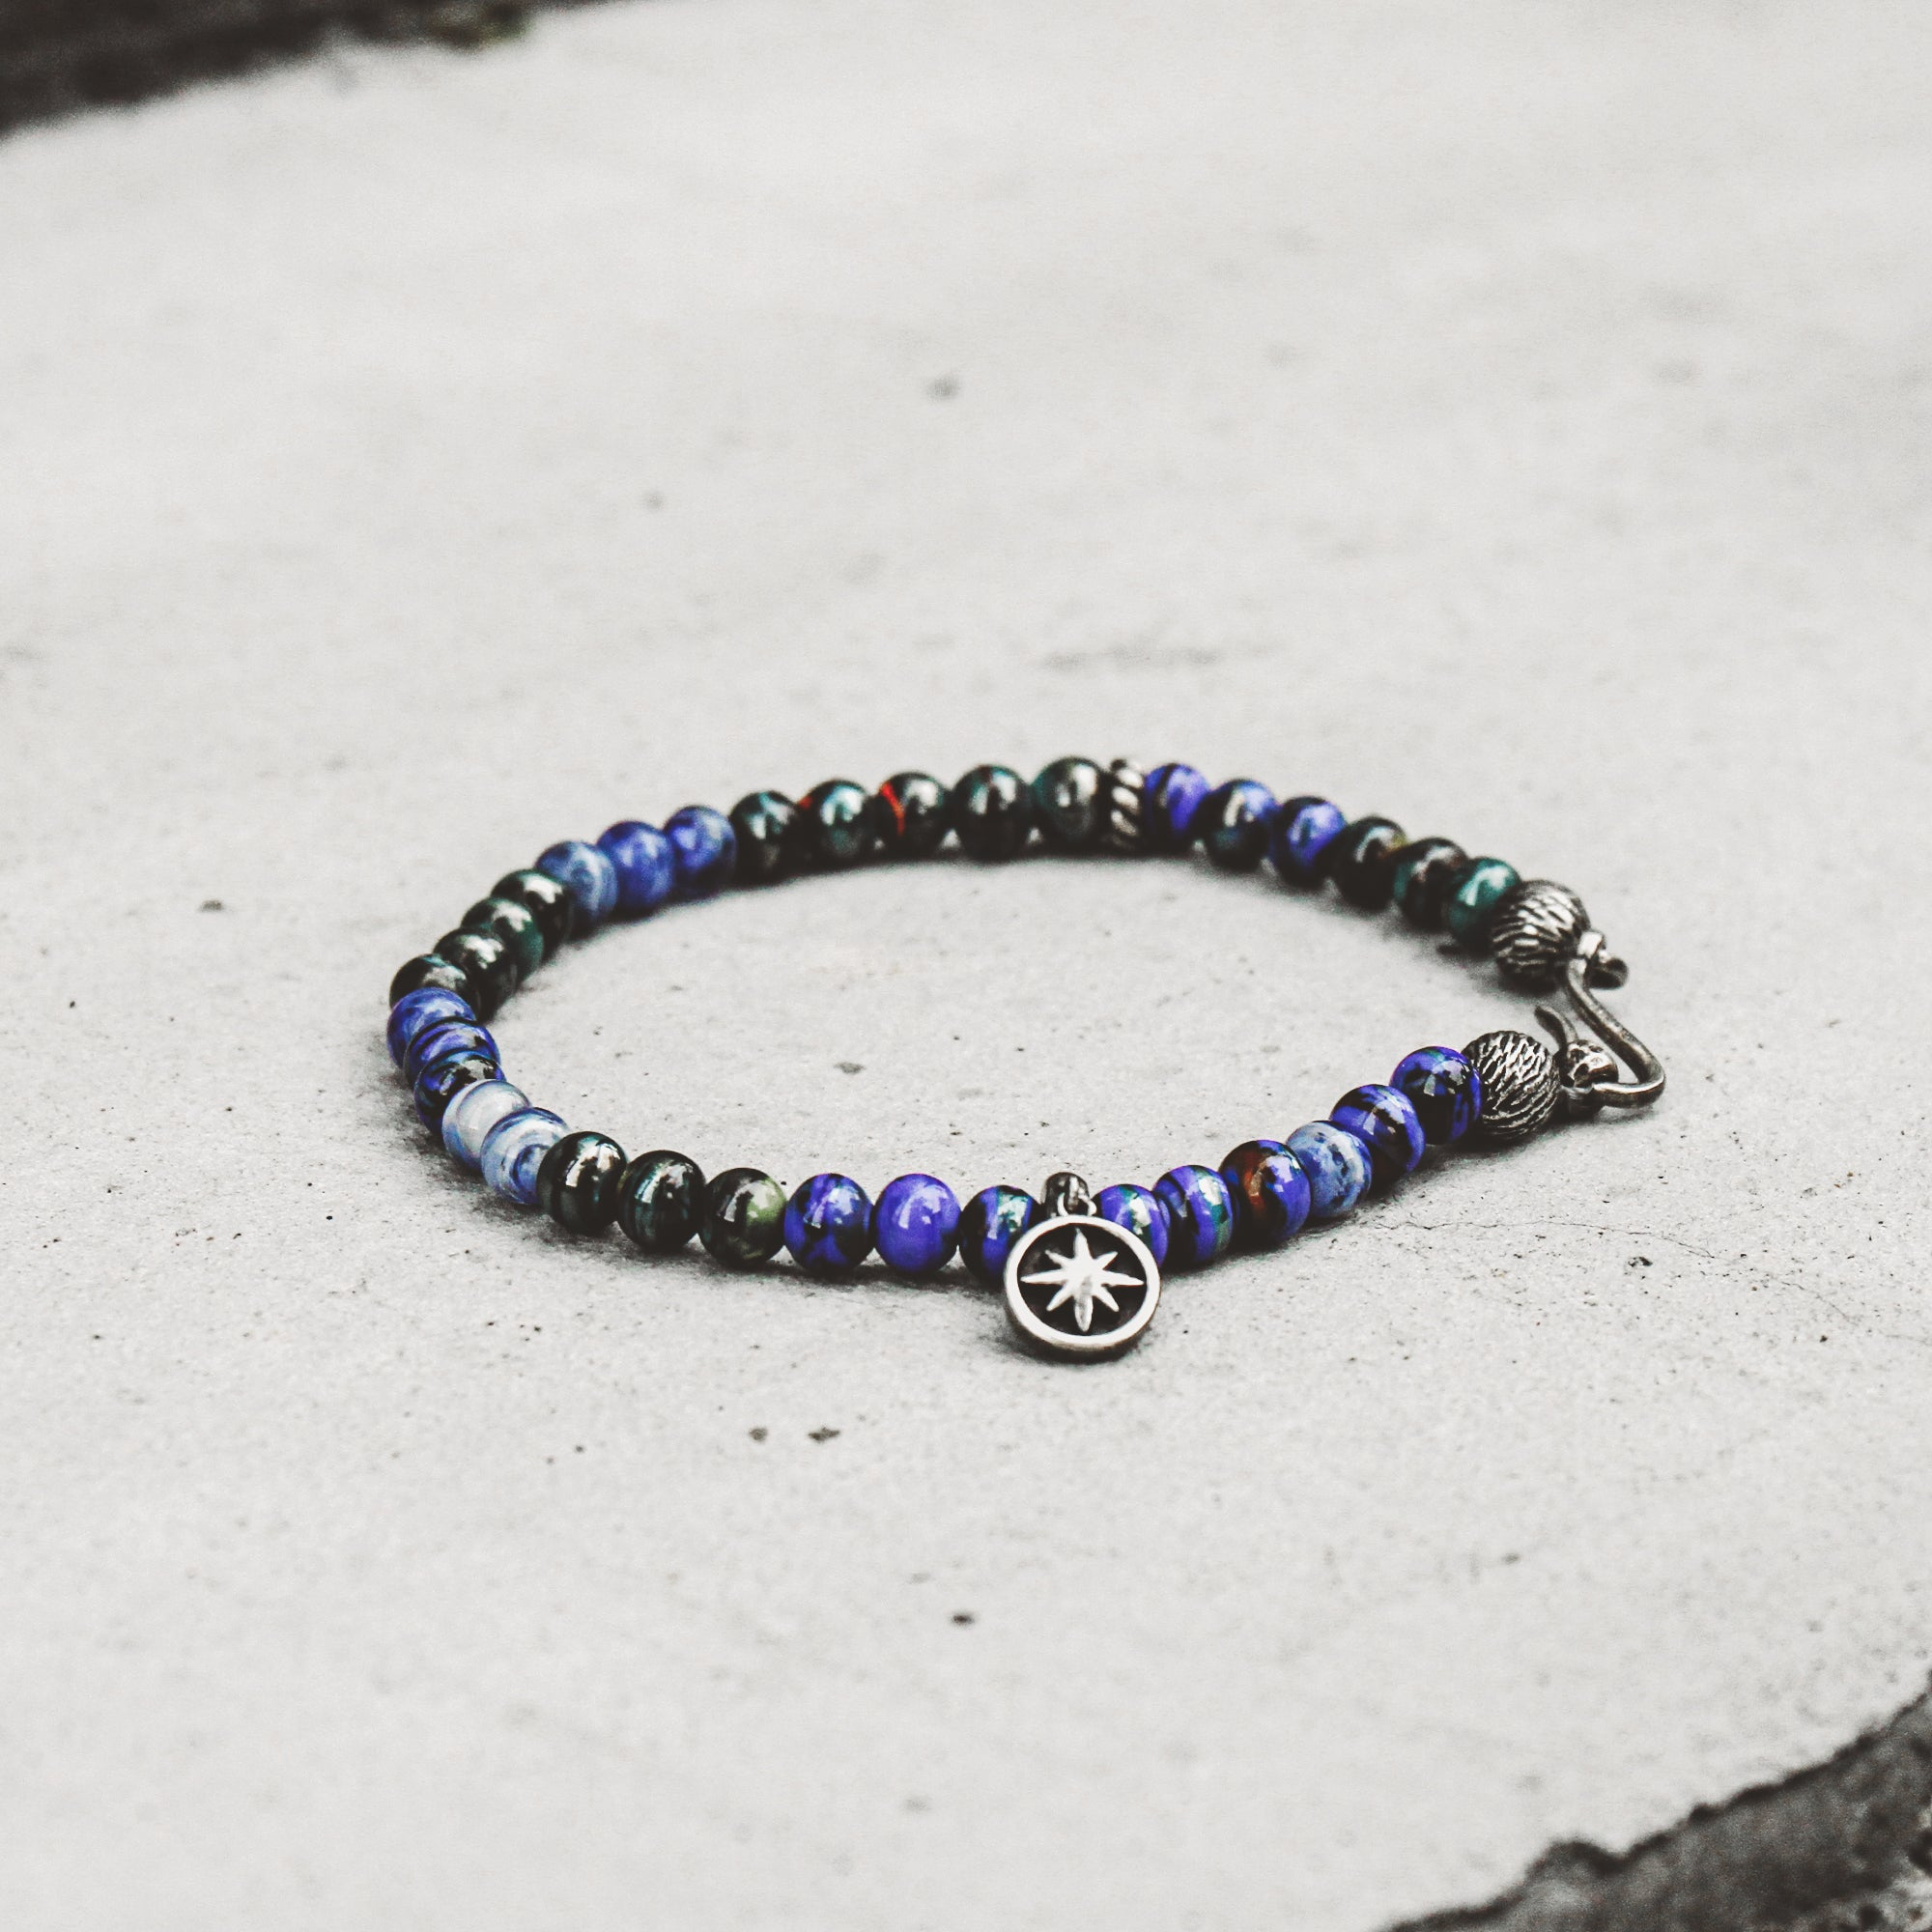 PACIFIC | Silver Bracelet with Black and Blue Murano Beads and Hook Clasp